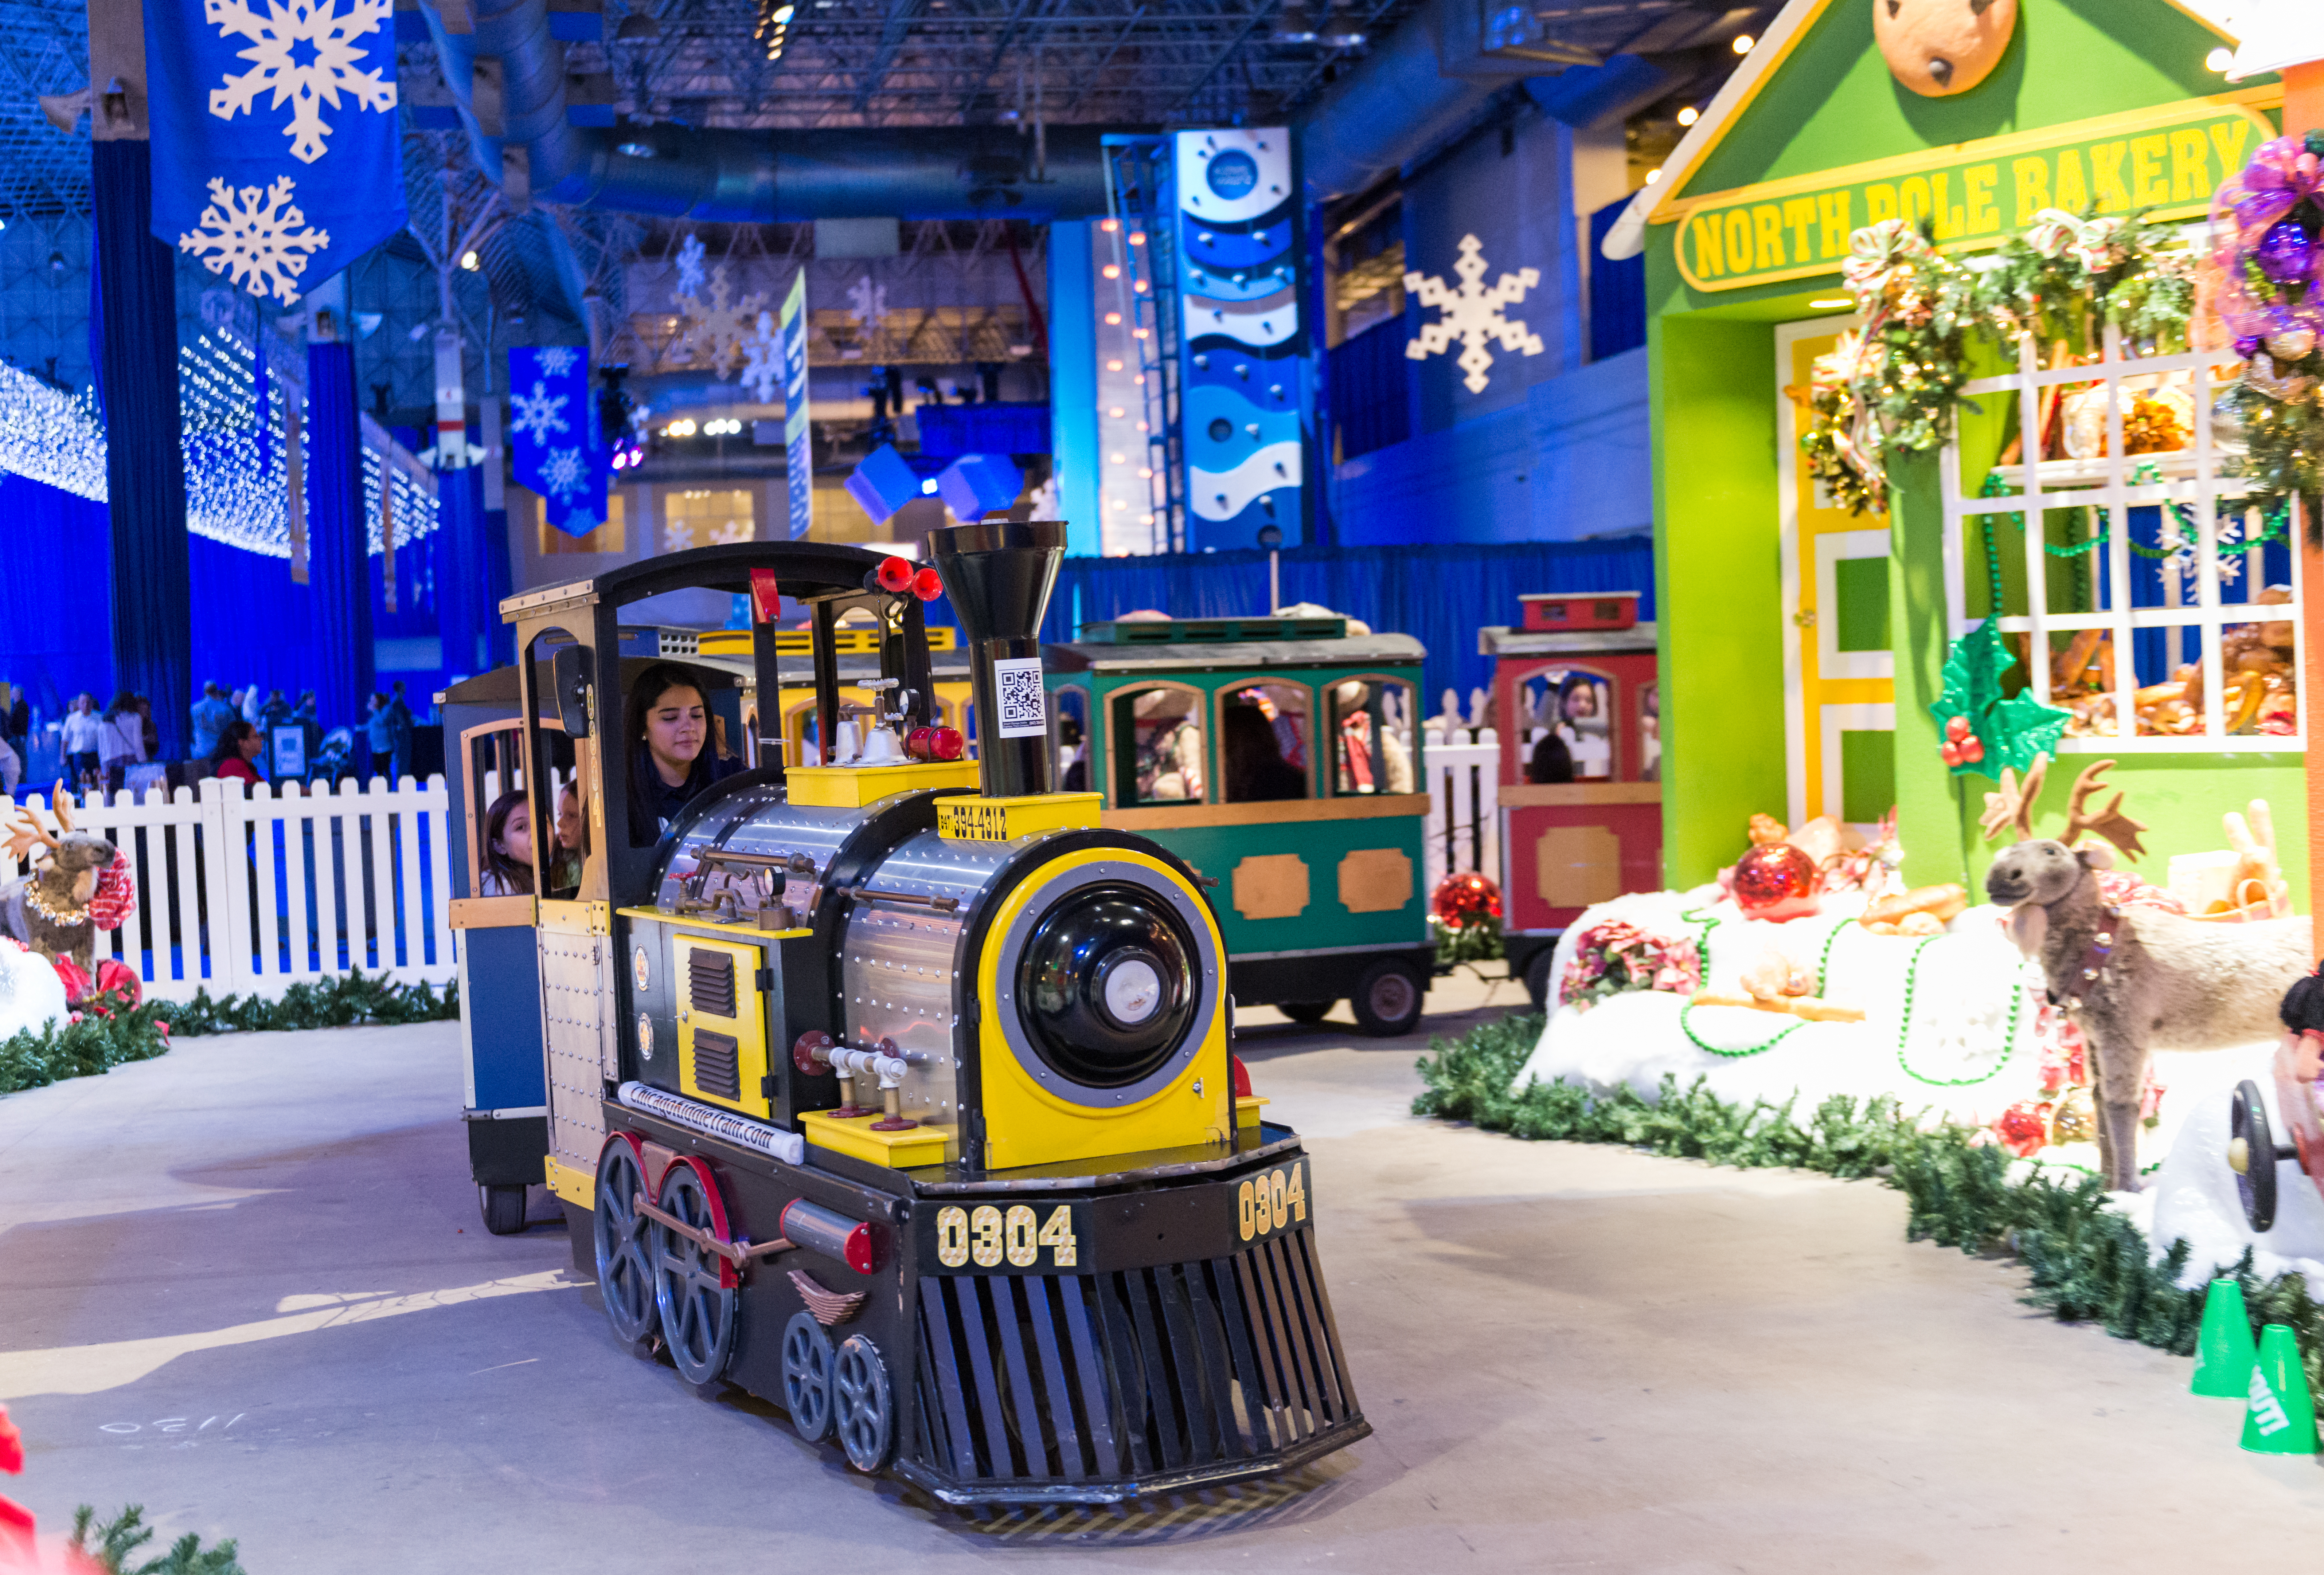 A holiday train is among the family-friendly attractions at Winter Wonderfest at Navy Pier.